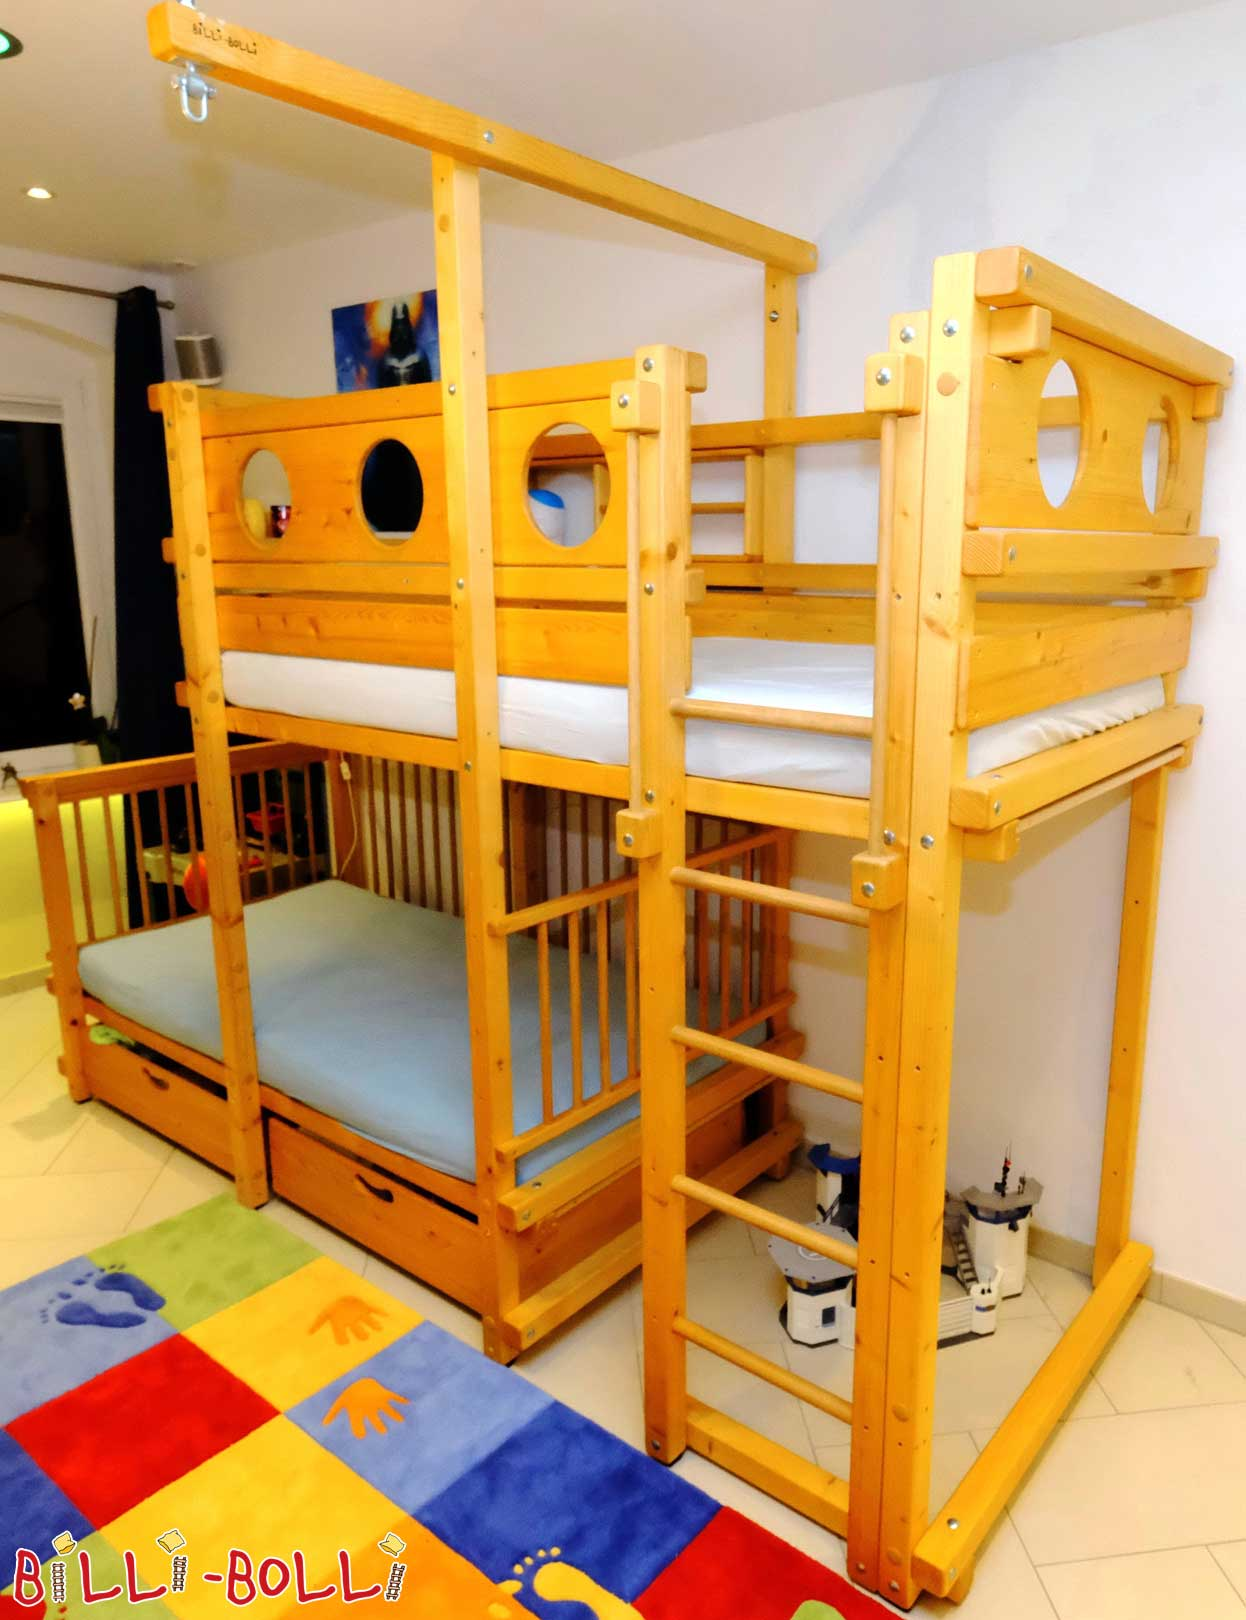 Cheap Bolli bunk bed 90 x 190, purchased by us in July 2011 (second hand bunk bed)